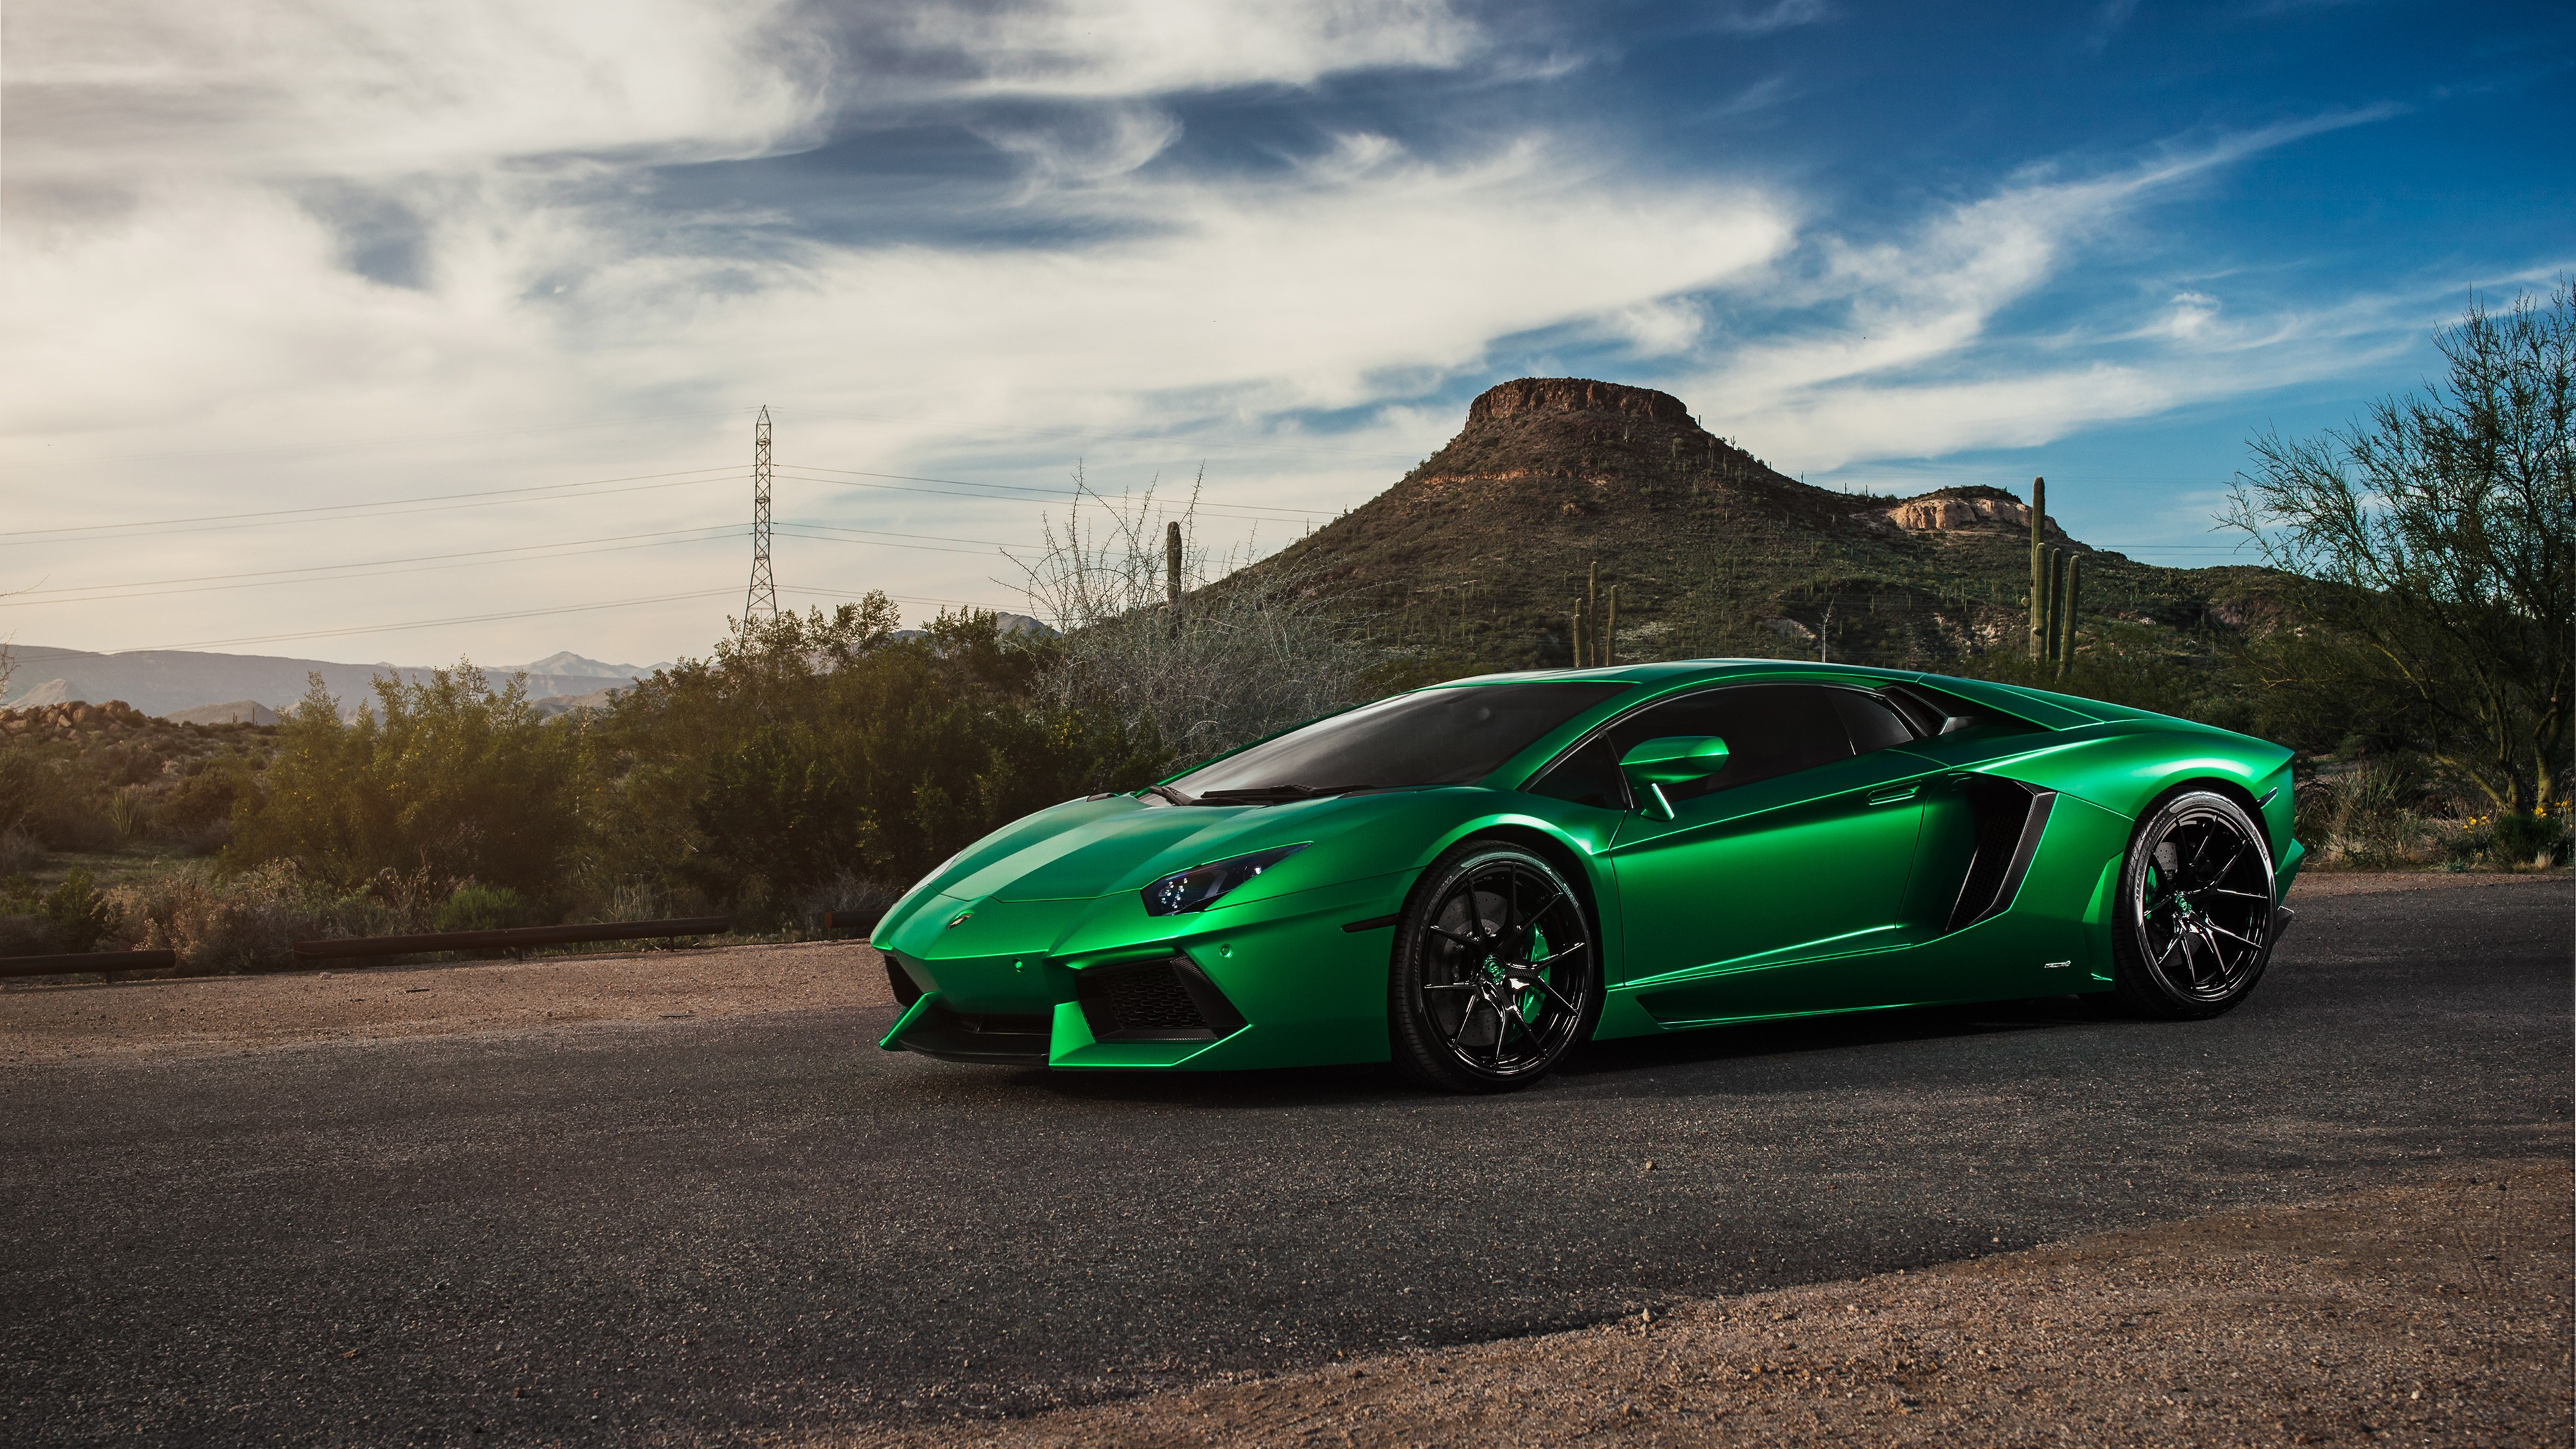 1920x1080 Lamborghini Aventador Green 4k Laptop Full Hd 1080p Hd 4k